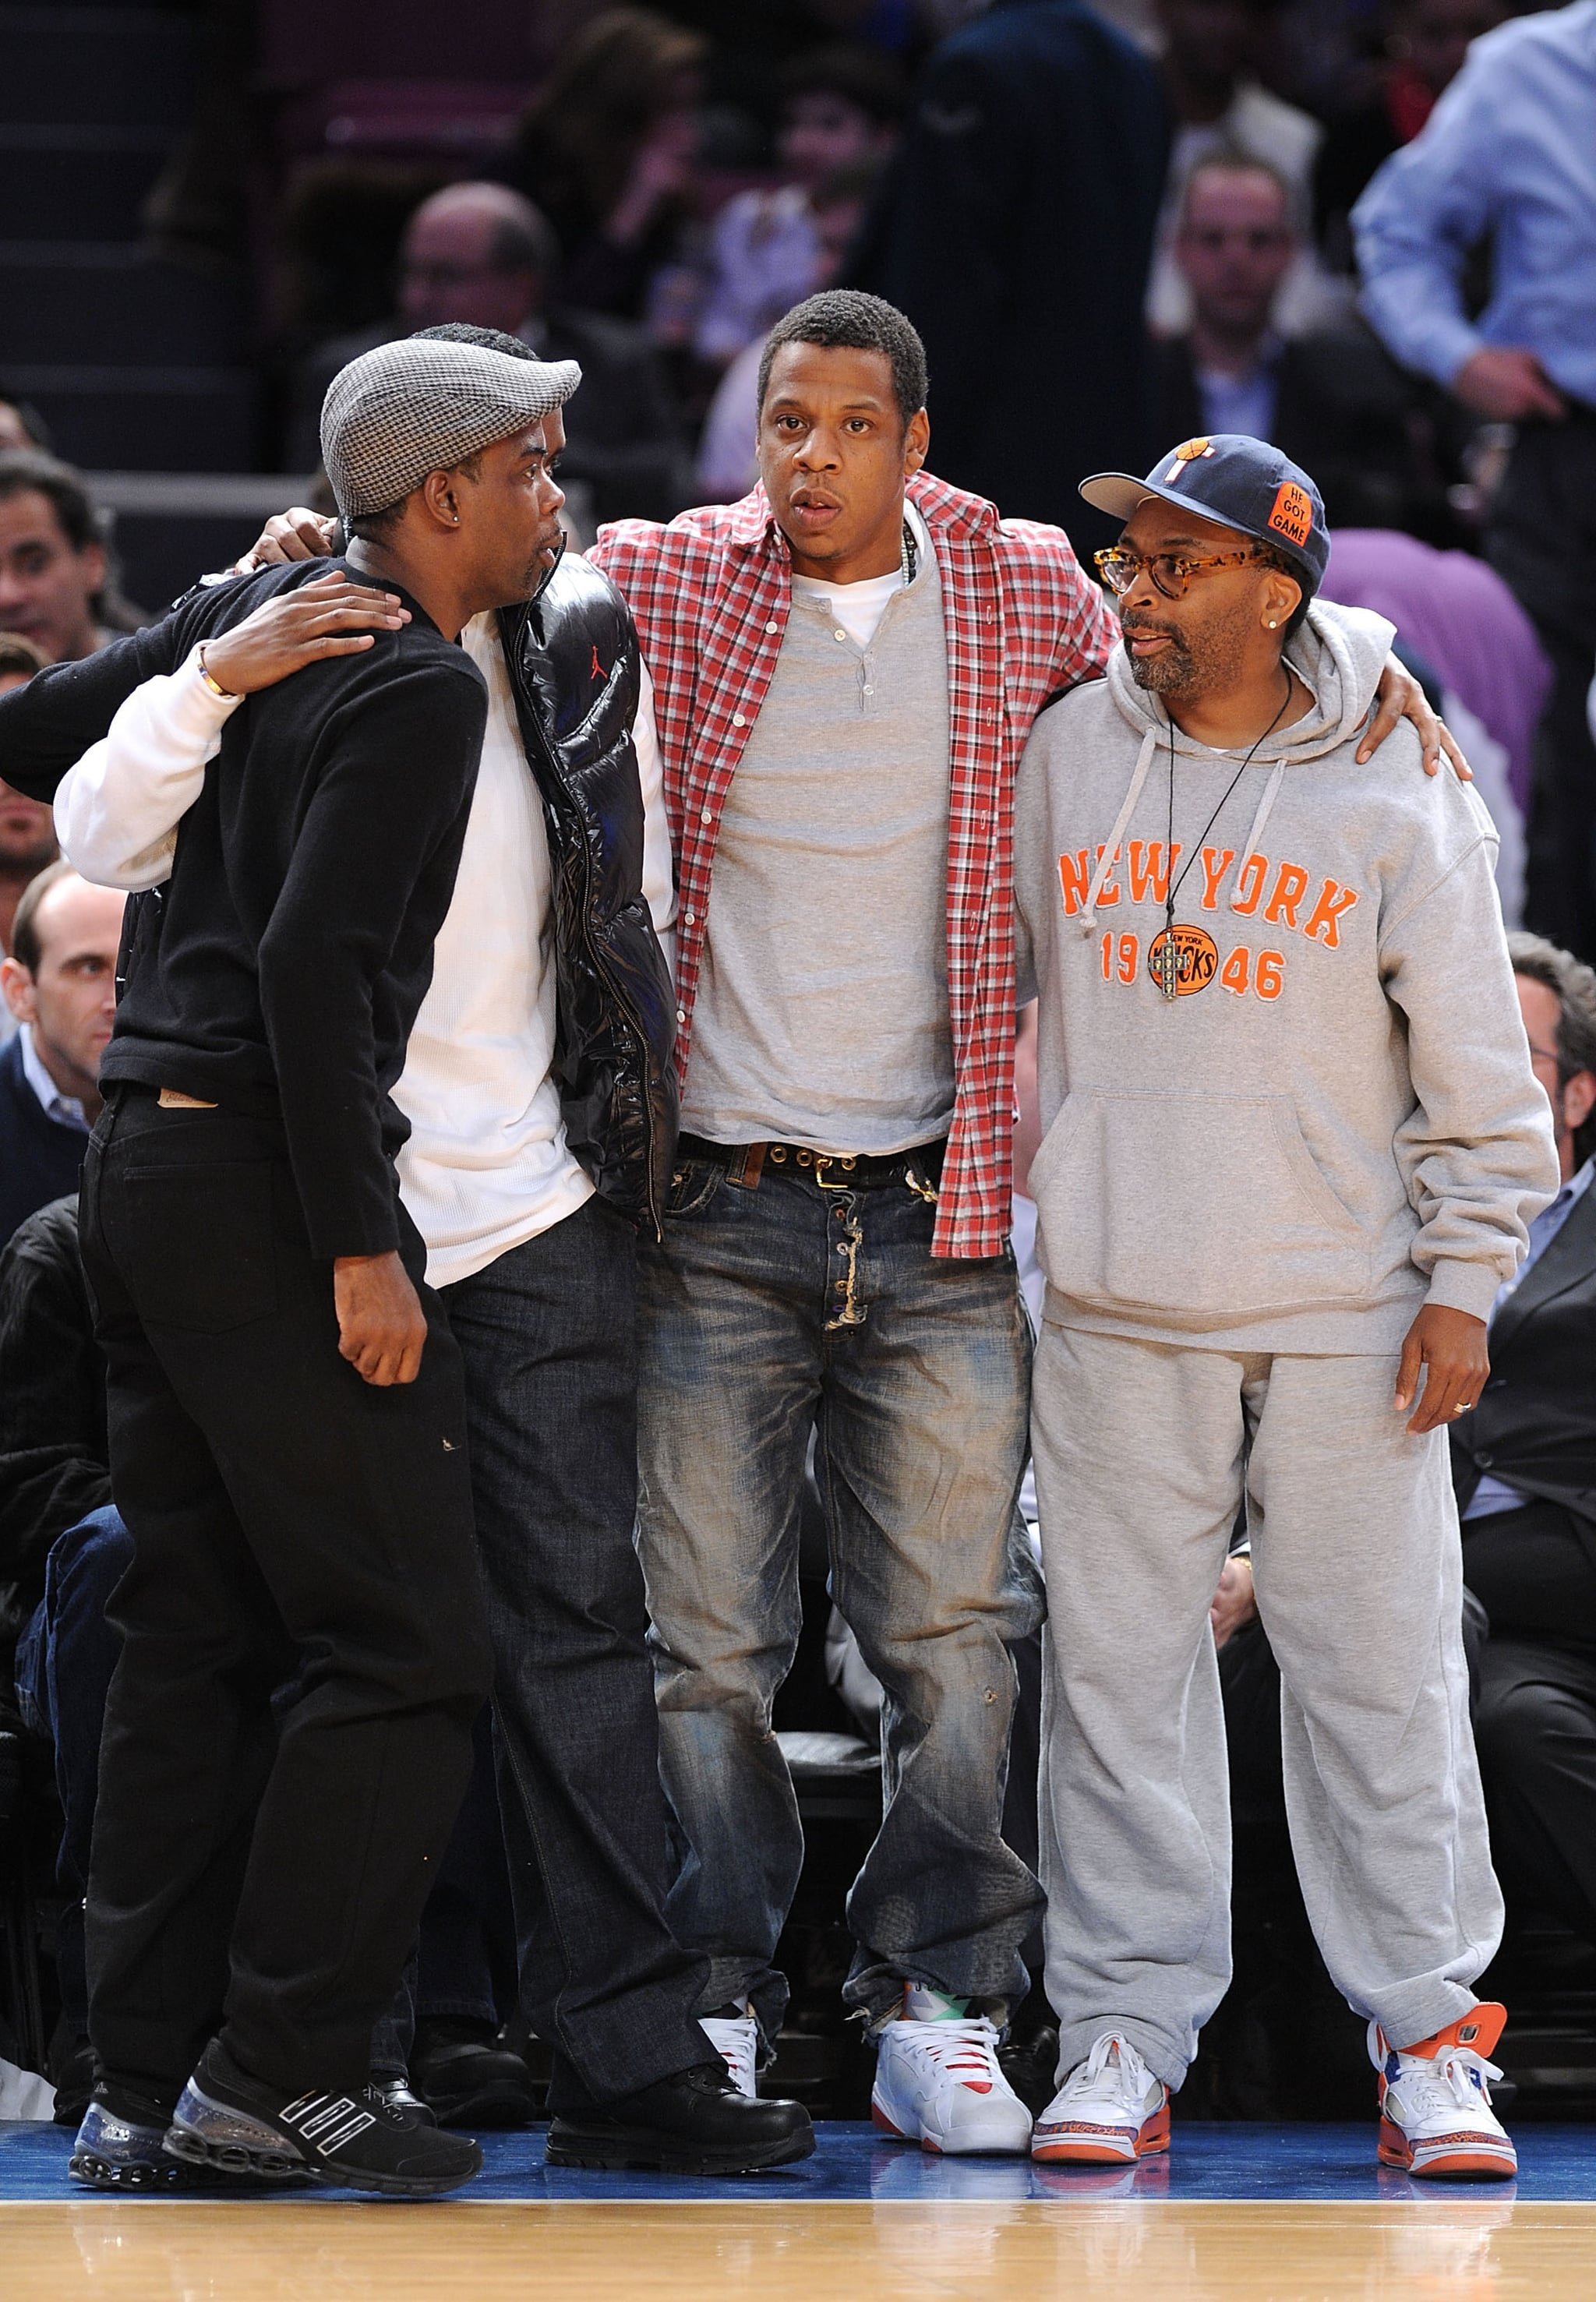 Photos Of Jay Z And Diddy At Knicks Game Popsugar Celebrity